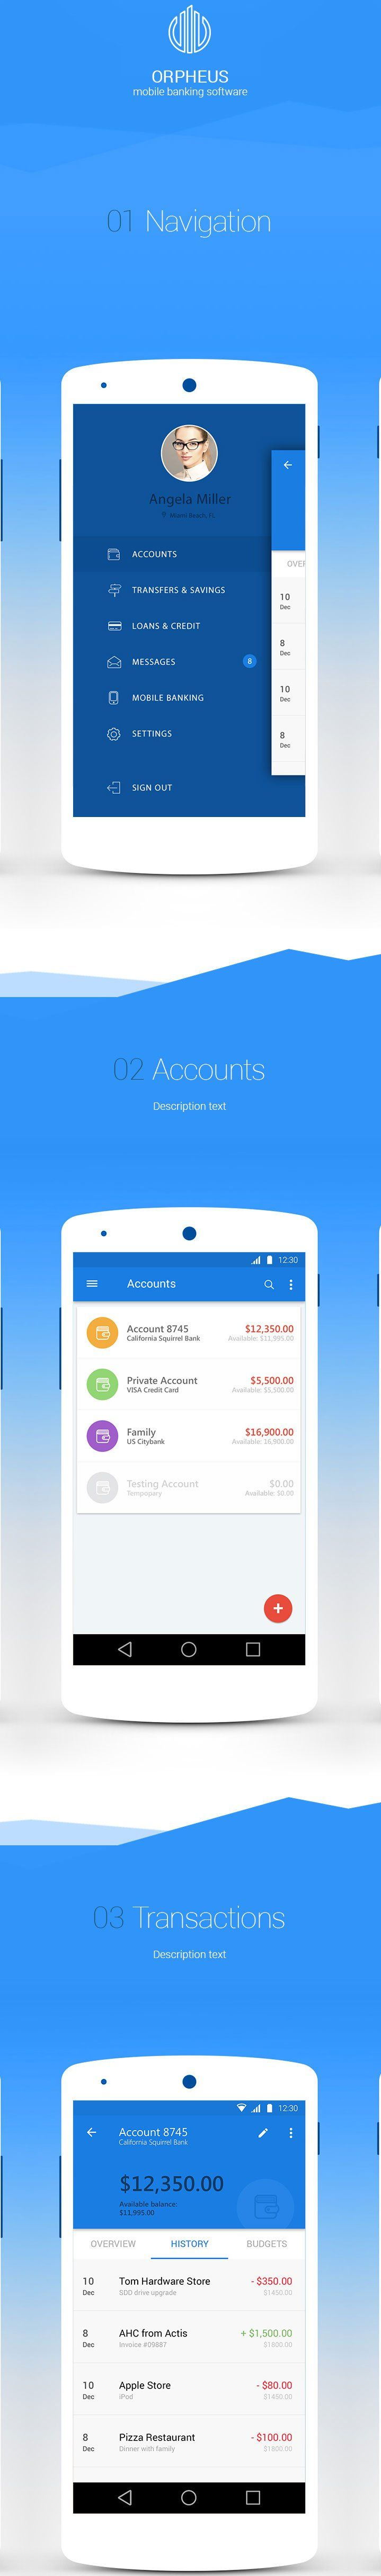 Mobile Banking Make some easy money with this FREE web app --> http://bitcoinfaucetbonanza.com/ <-- Get Rich!